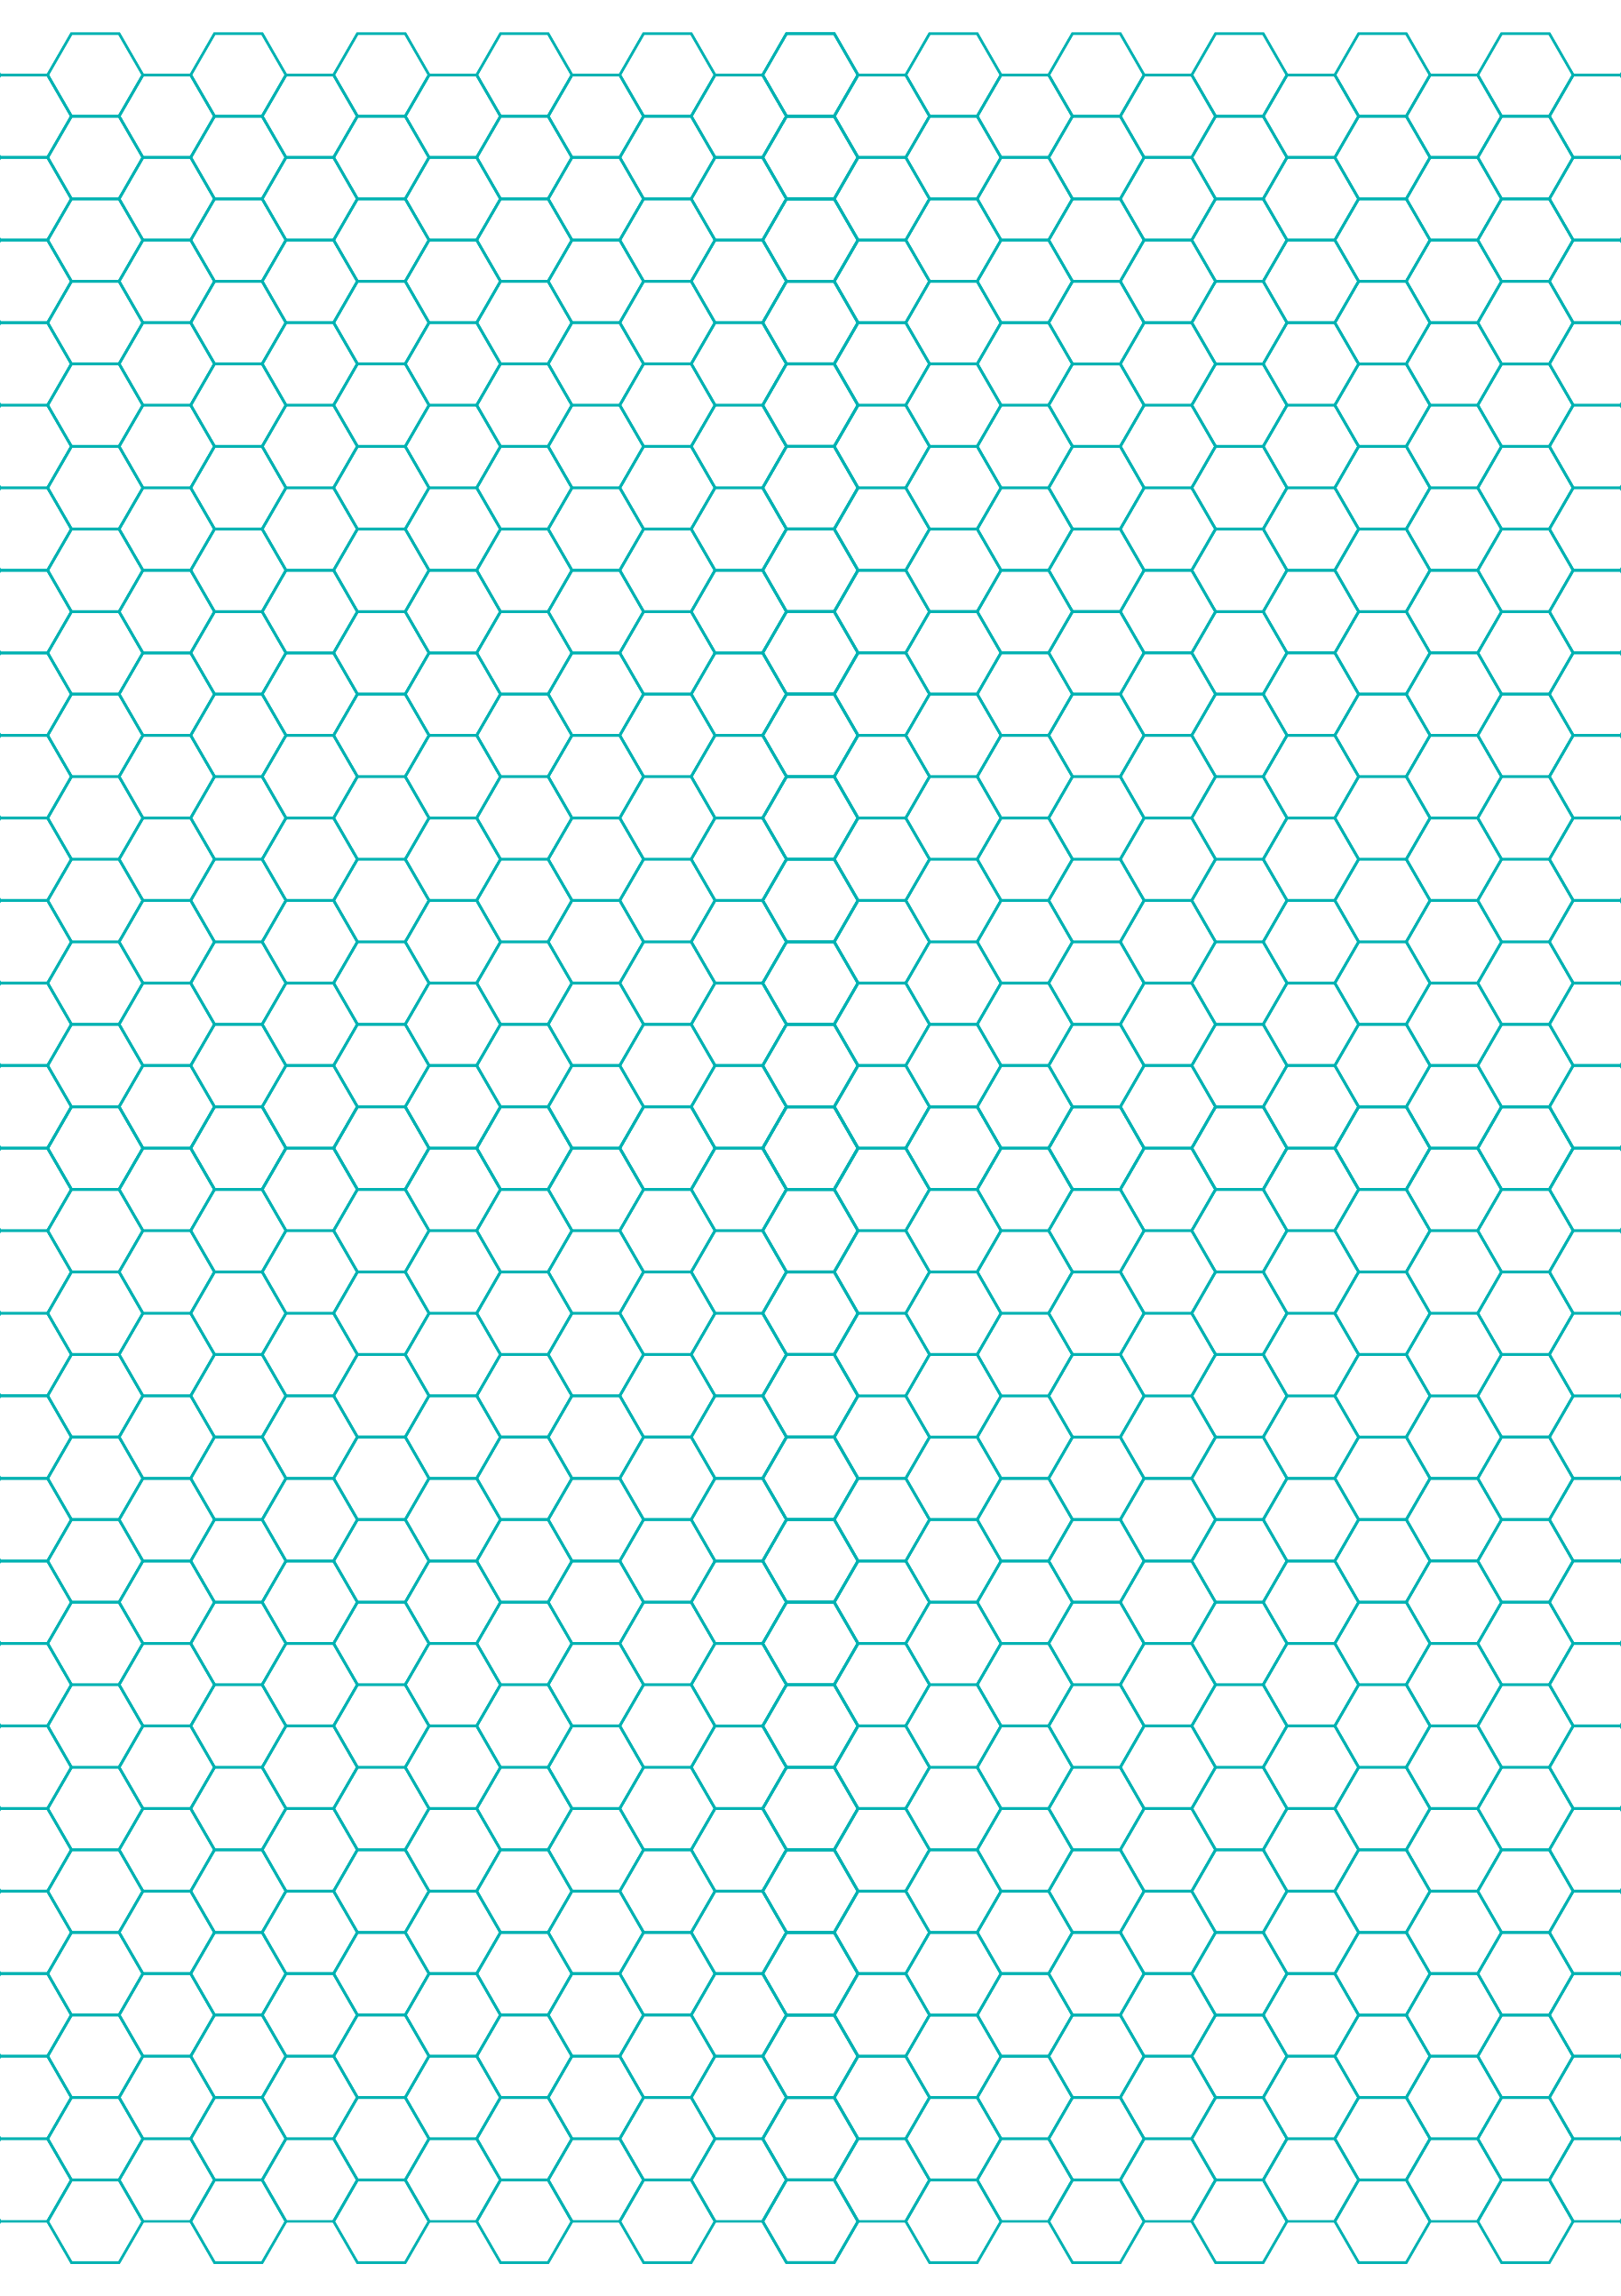 hexagon graph paper with 1  4